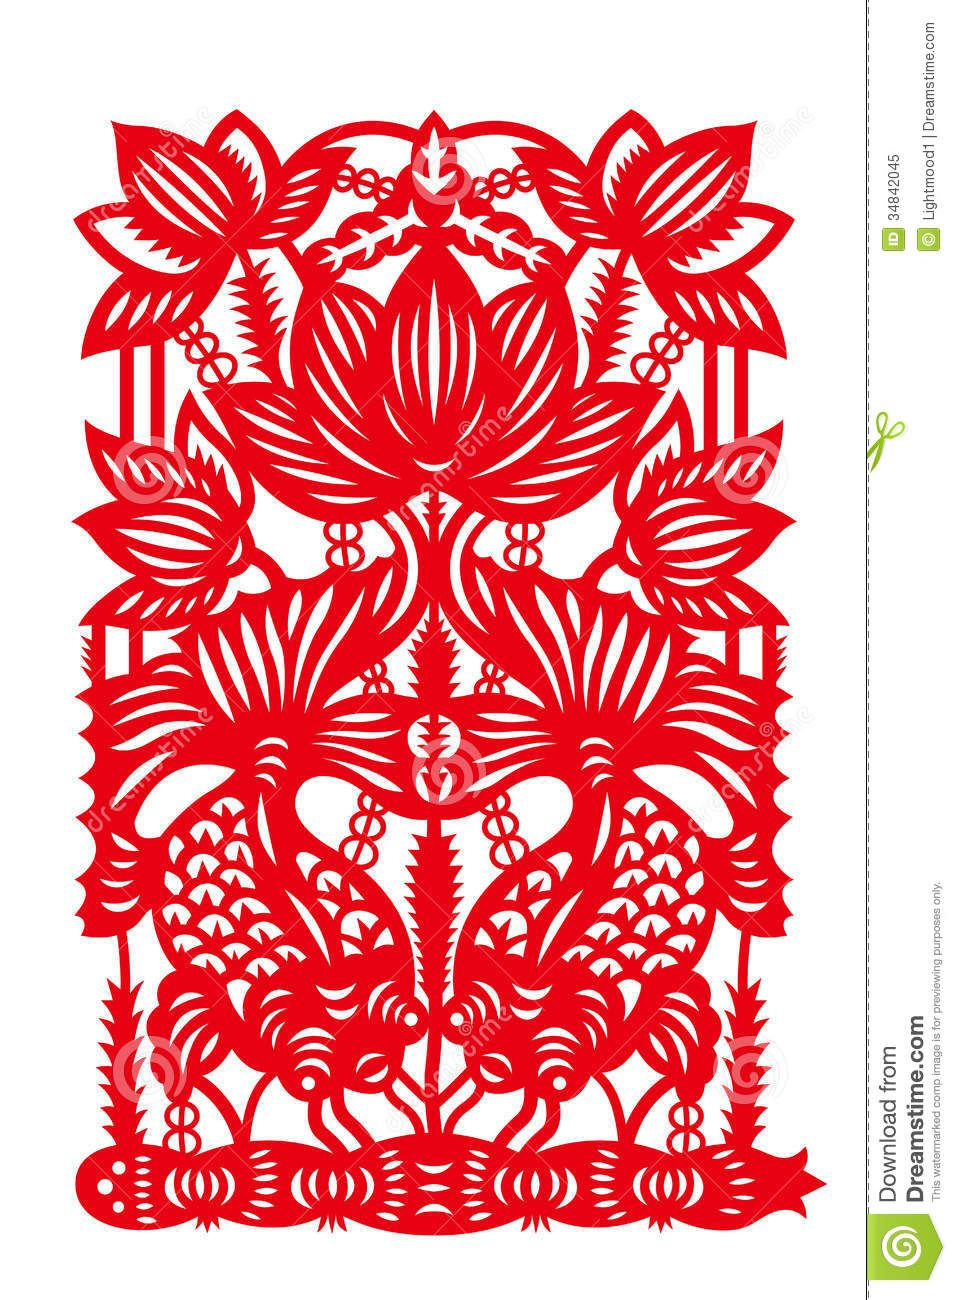 Pin On Chinese Paper Cutting